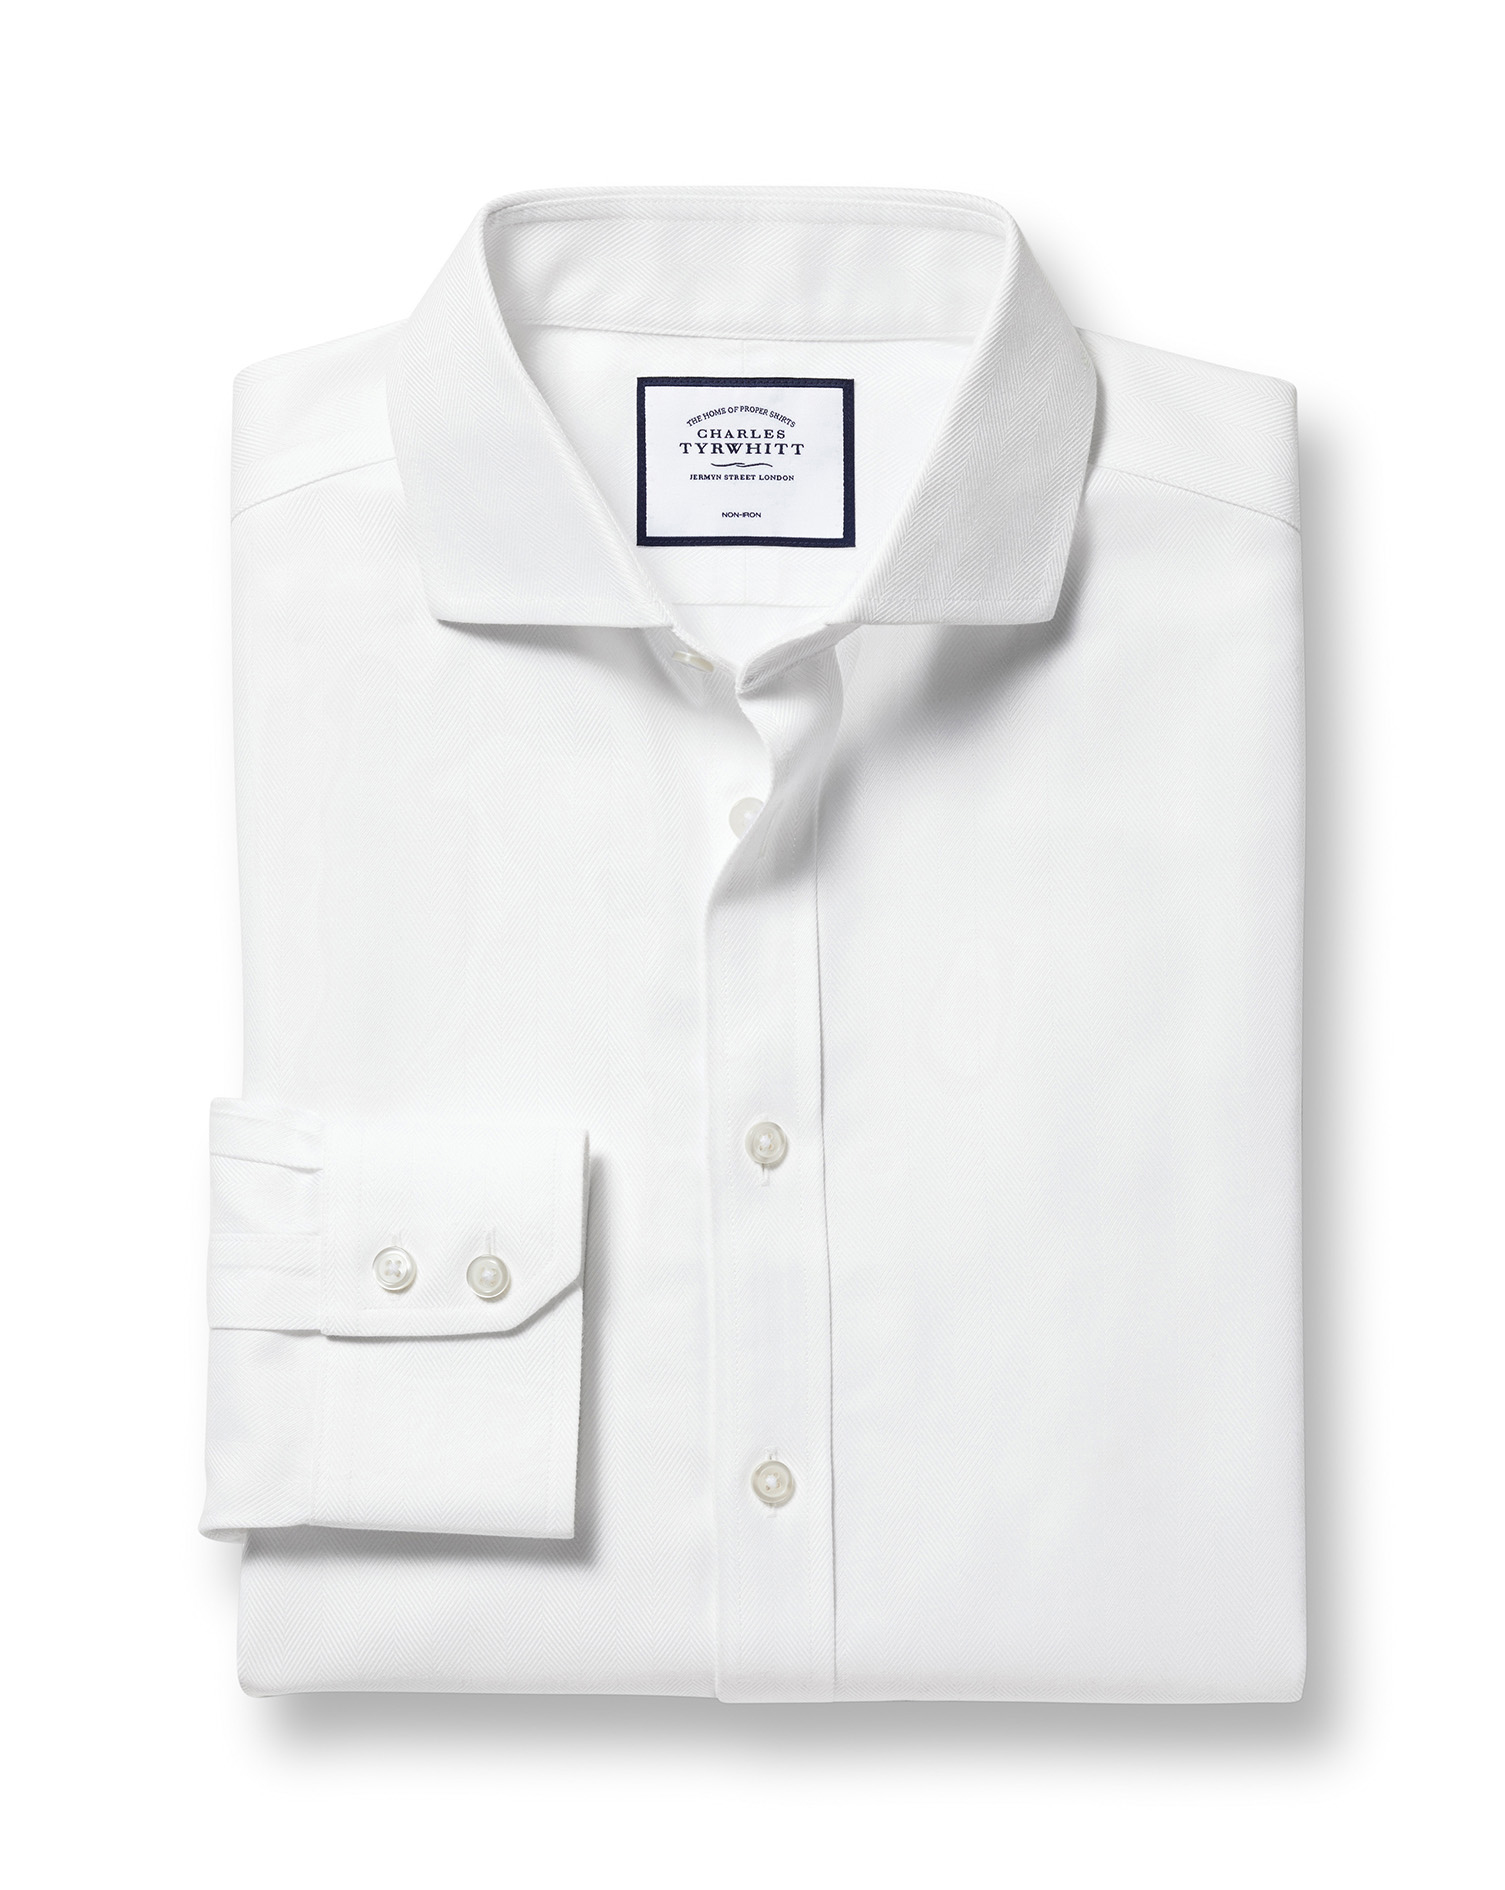 Extra Slim Fit Cutaway Non-Iron Herringbone White Cotton Formal Shirt Single Cuff Size 16.5/38 by Ch